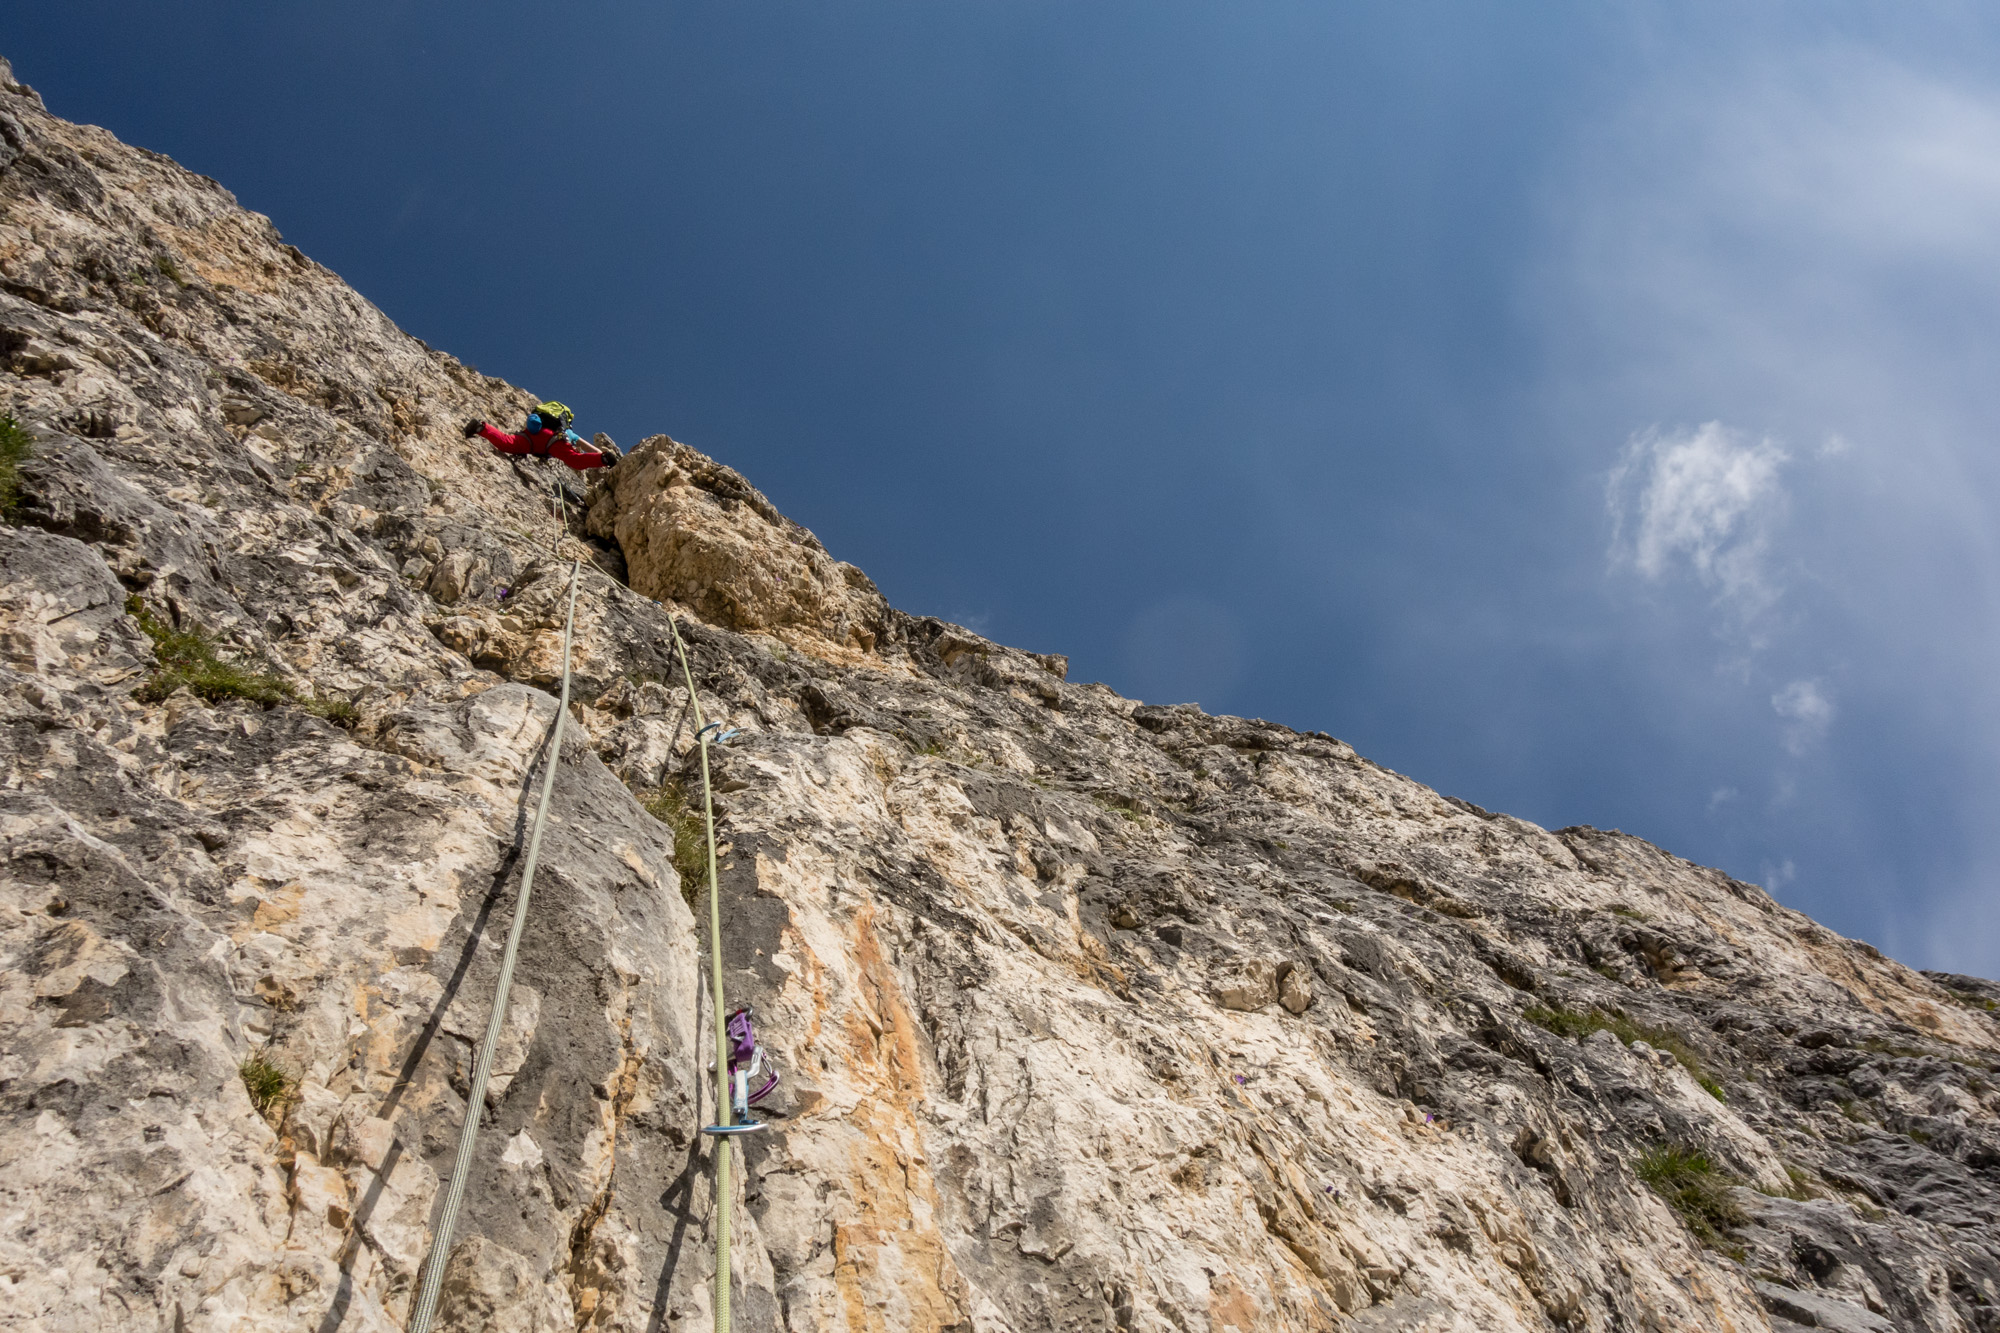 No warmup for Debs as she bridges up the crux pitch of the Comici South Arete, straight off the deck